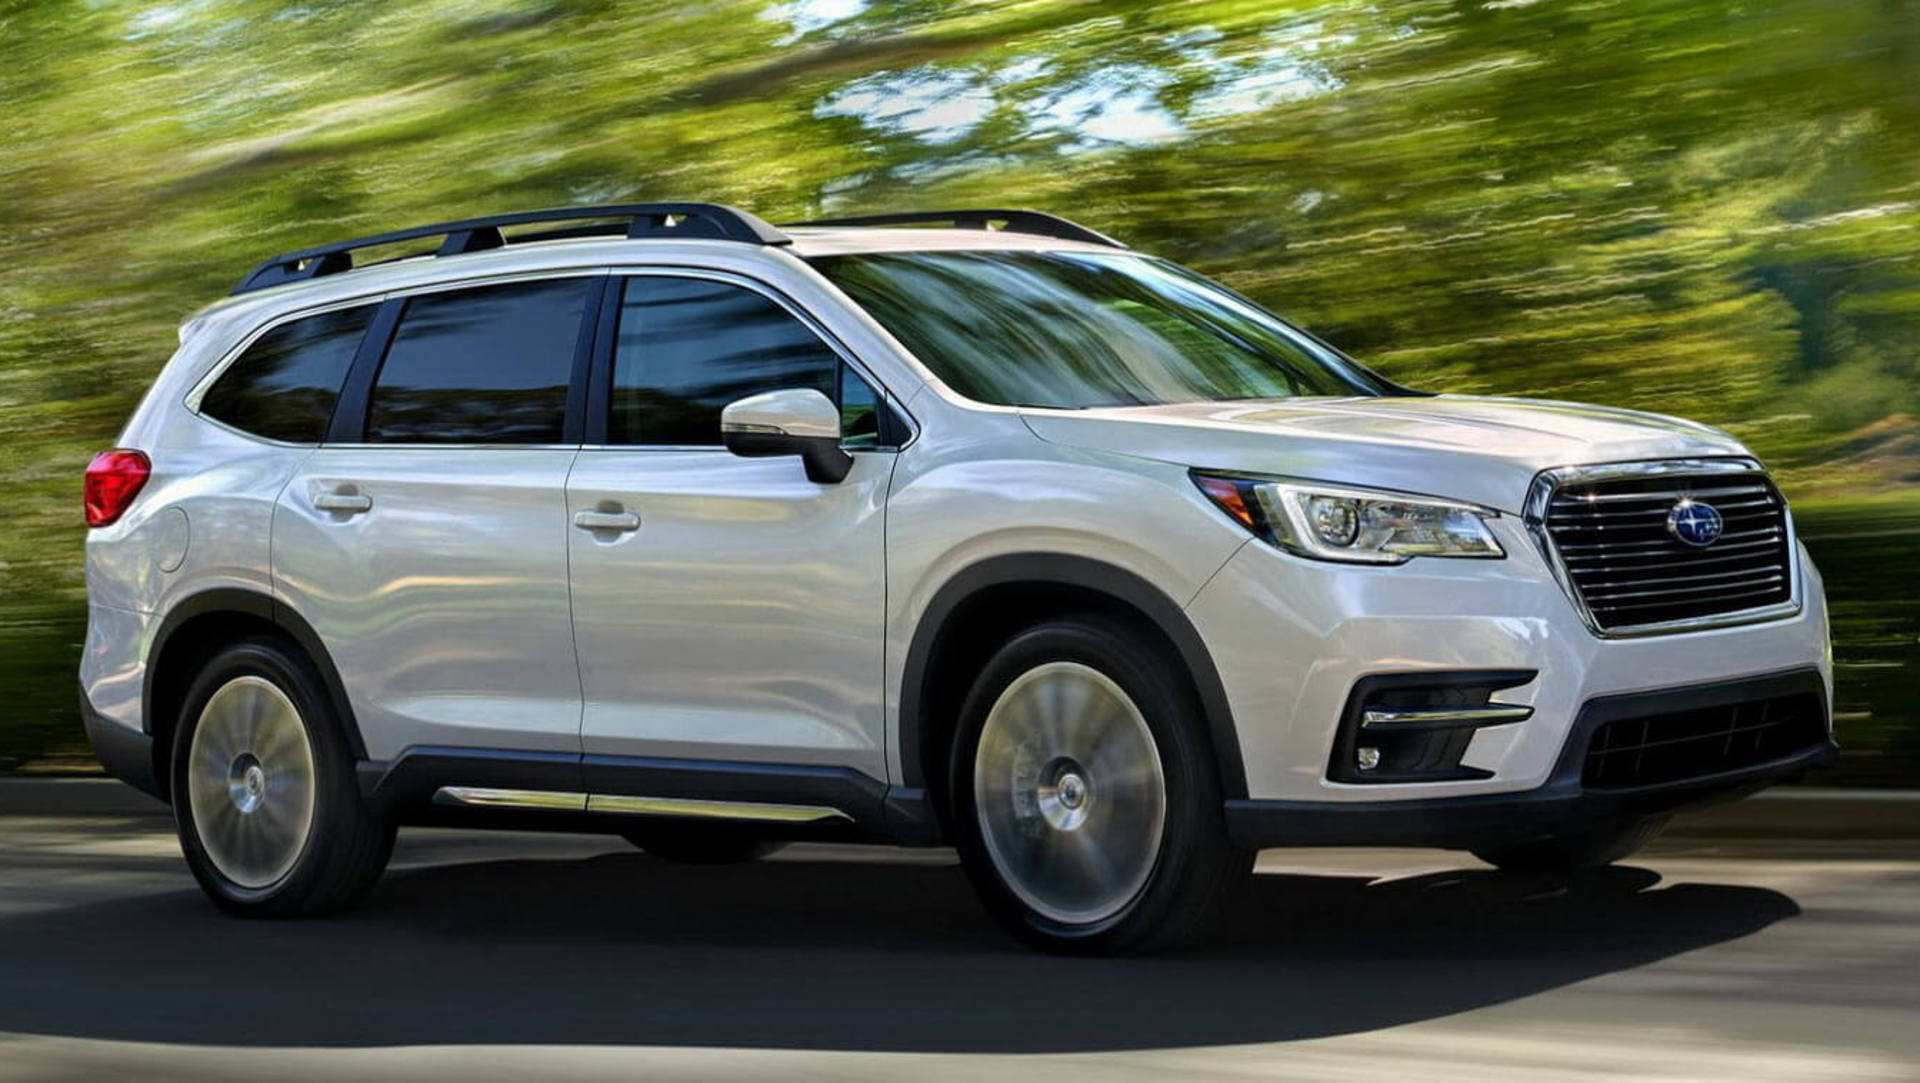 54 New 2019 Subaru 7 Seater Configurations with 2019 Subaru 7 Seater